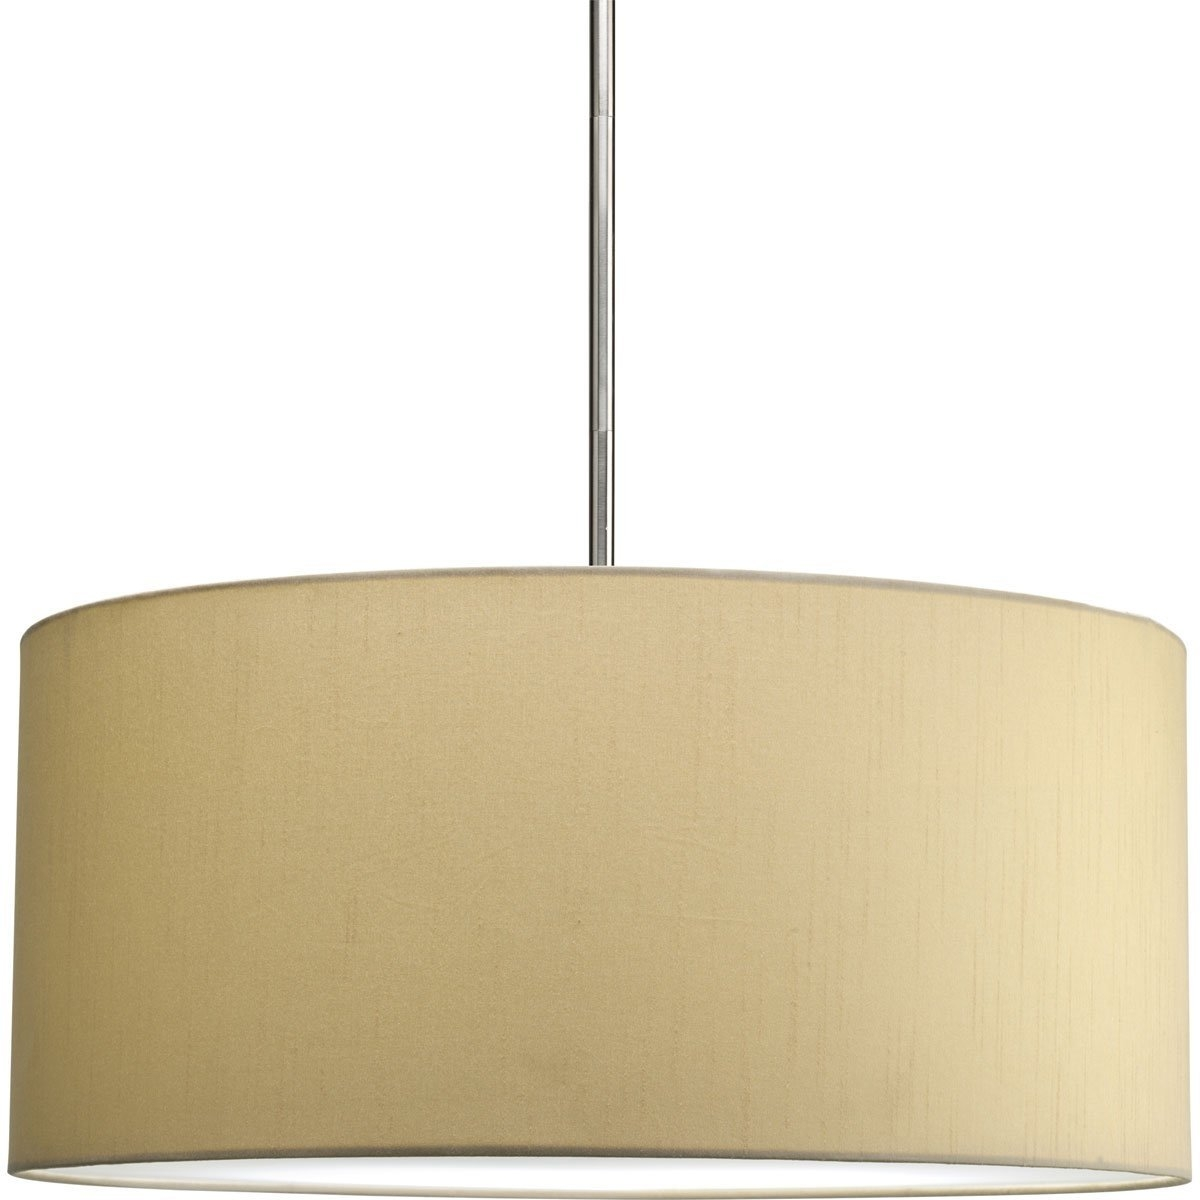 Rattan Floor Lamp Wooden Floor Lamp Pagazzi Lighting Throughout Chandelier Lamp Shades (Image 19 of 25)